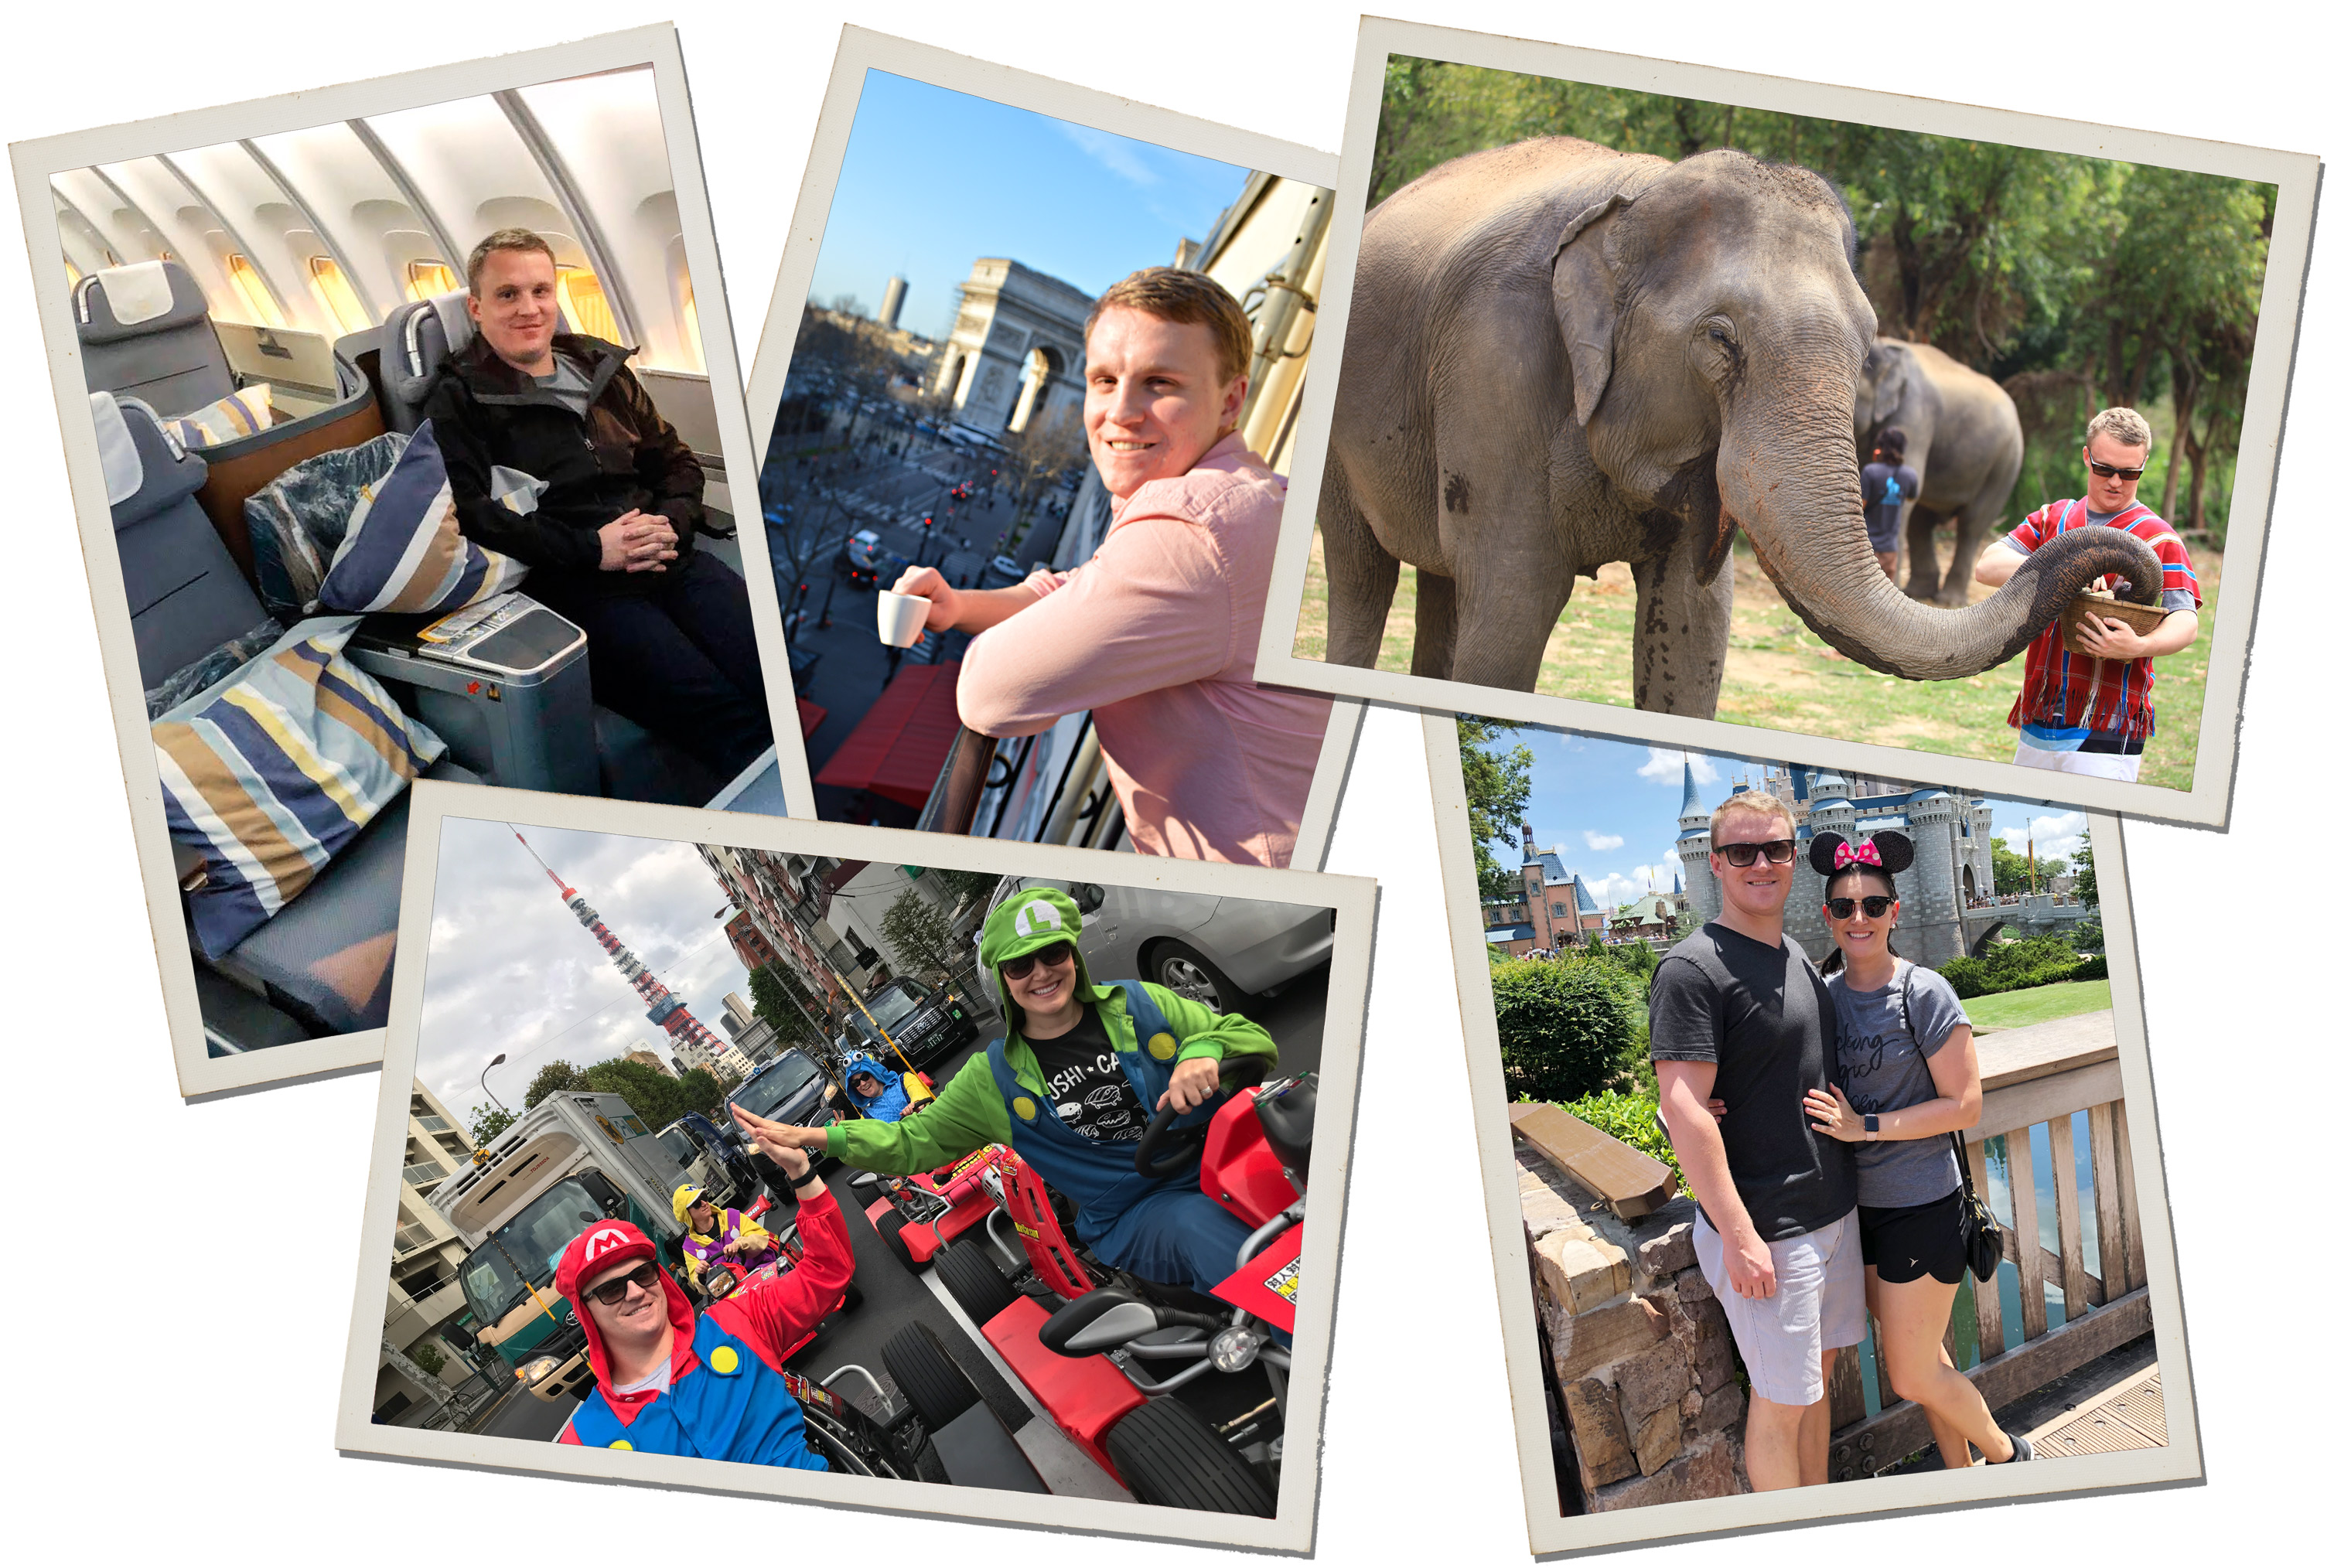 (Clockwise from top left) Bryce Conway, who founded the churning community 10xTravel, flying business-class on Lufthansa to Rome.; Conway's hotel room in Paris featured a view of the Arc de Triomphe; Conway feeding an elephant in Thailand; Conway and his wife visiting Cinderella Castle at Walt Disney World in Florida with his wife; Conway driving Go Karts (Dressed as Mario) in Tokyo.